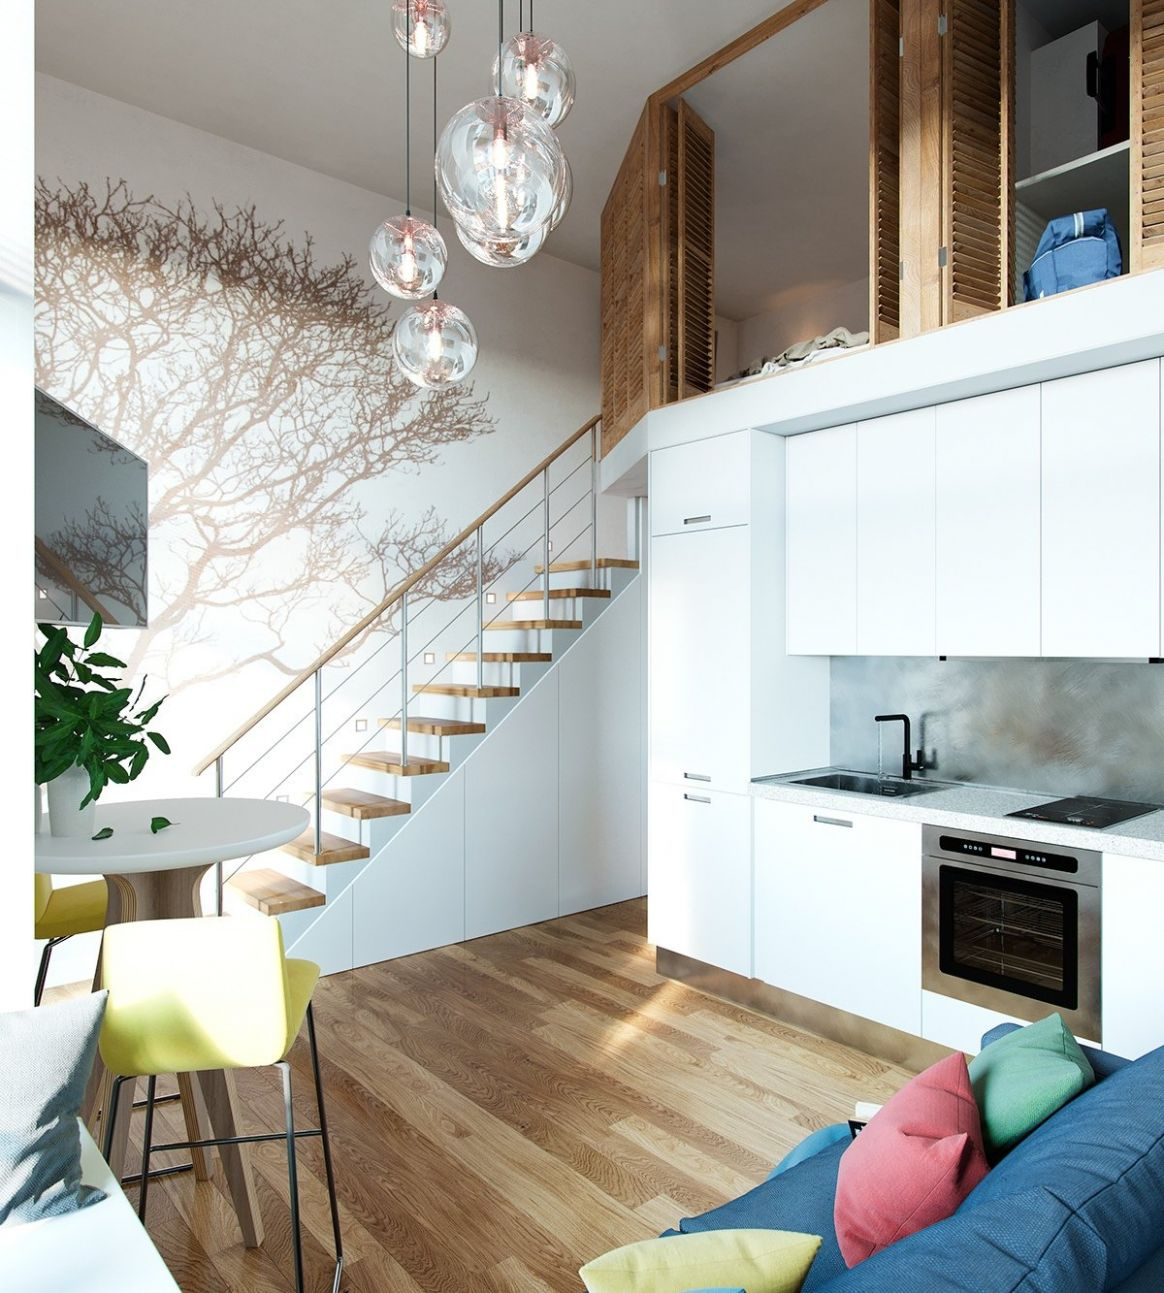 Small Homes That Use Lofts To Gain More Floor Space - apartment design with loft